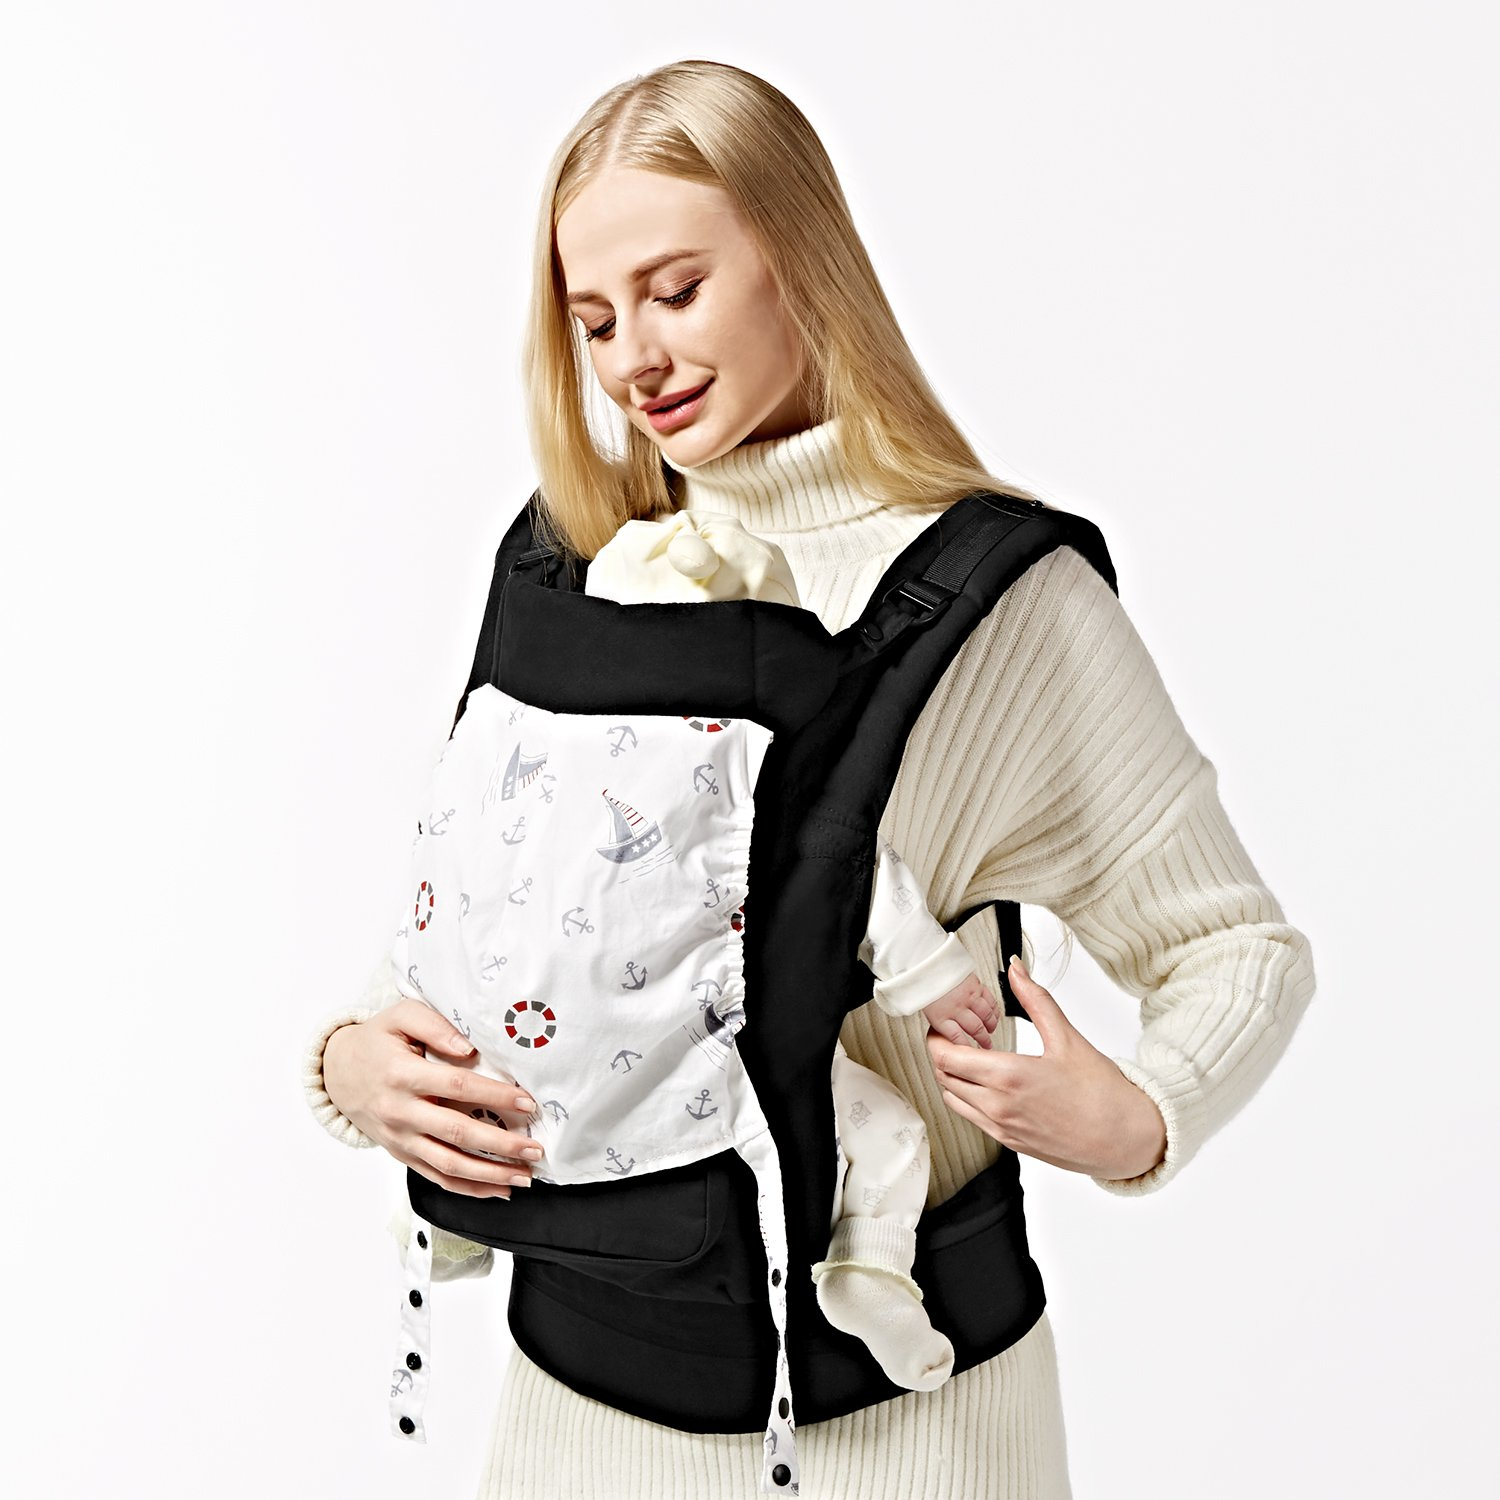 Amazon.com : GAGAKU Ergonomic Baby Carrier Soft Cotton Front and Back Child Carrier with Detachable Hood for All Seasons (5-48 Months) - Grey : Baby